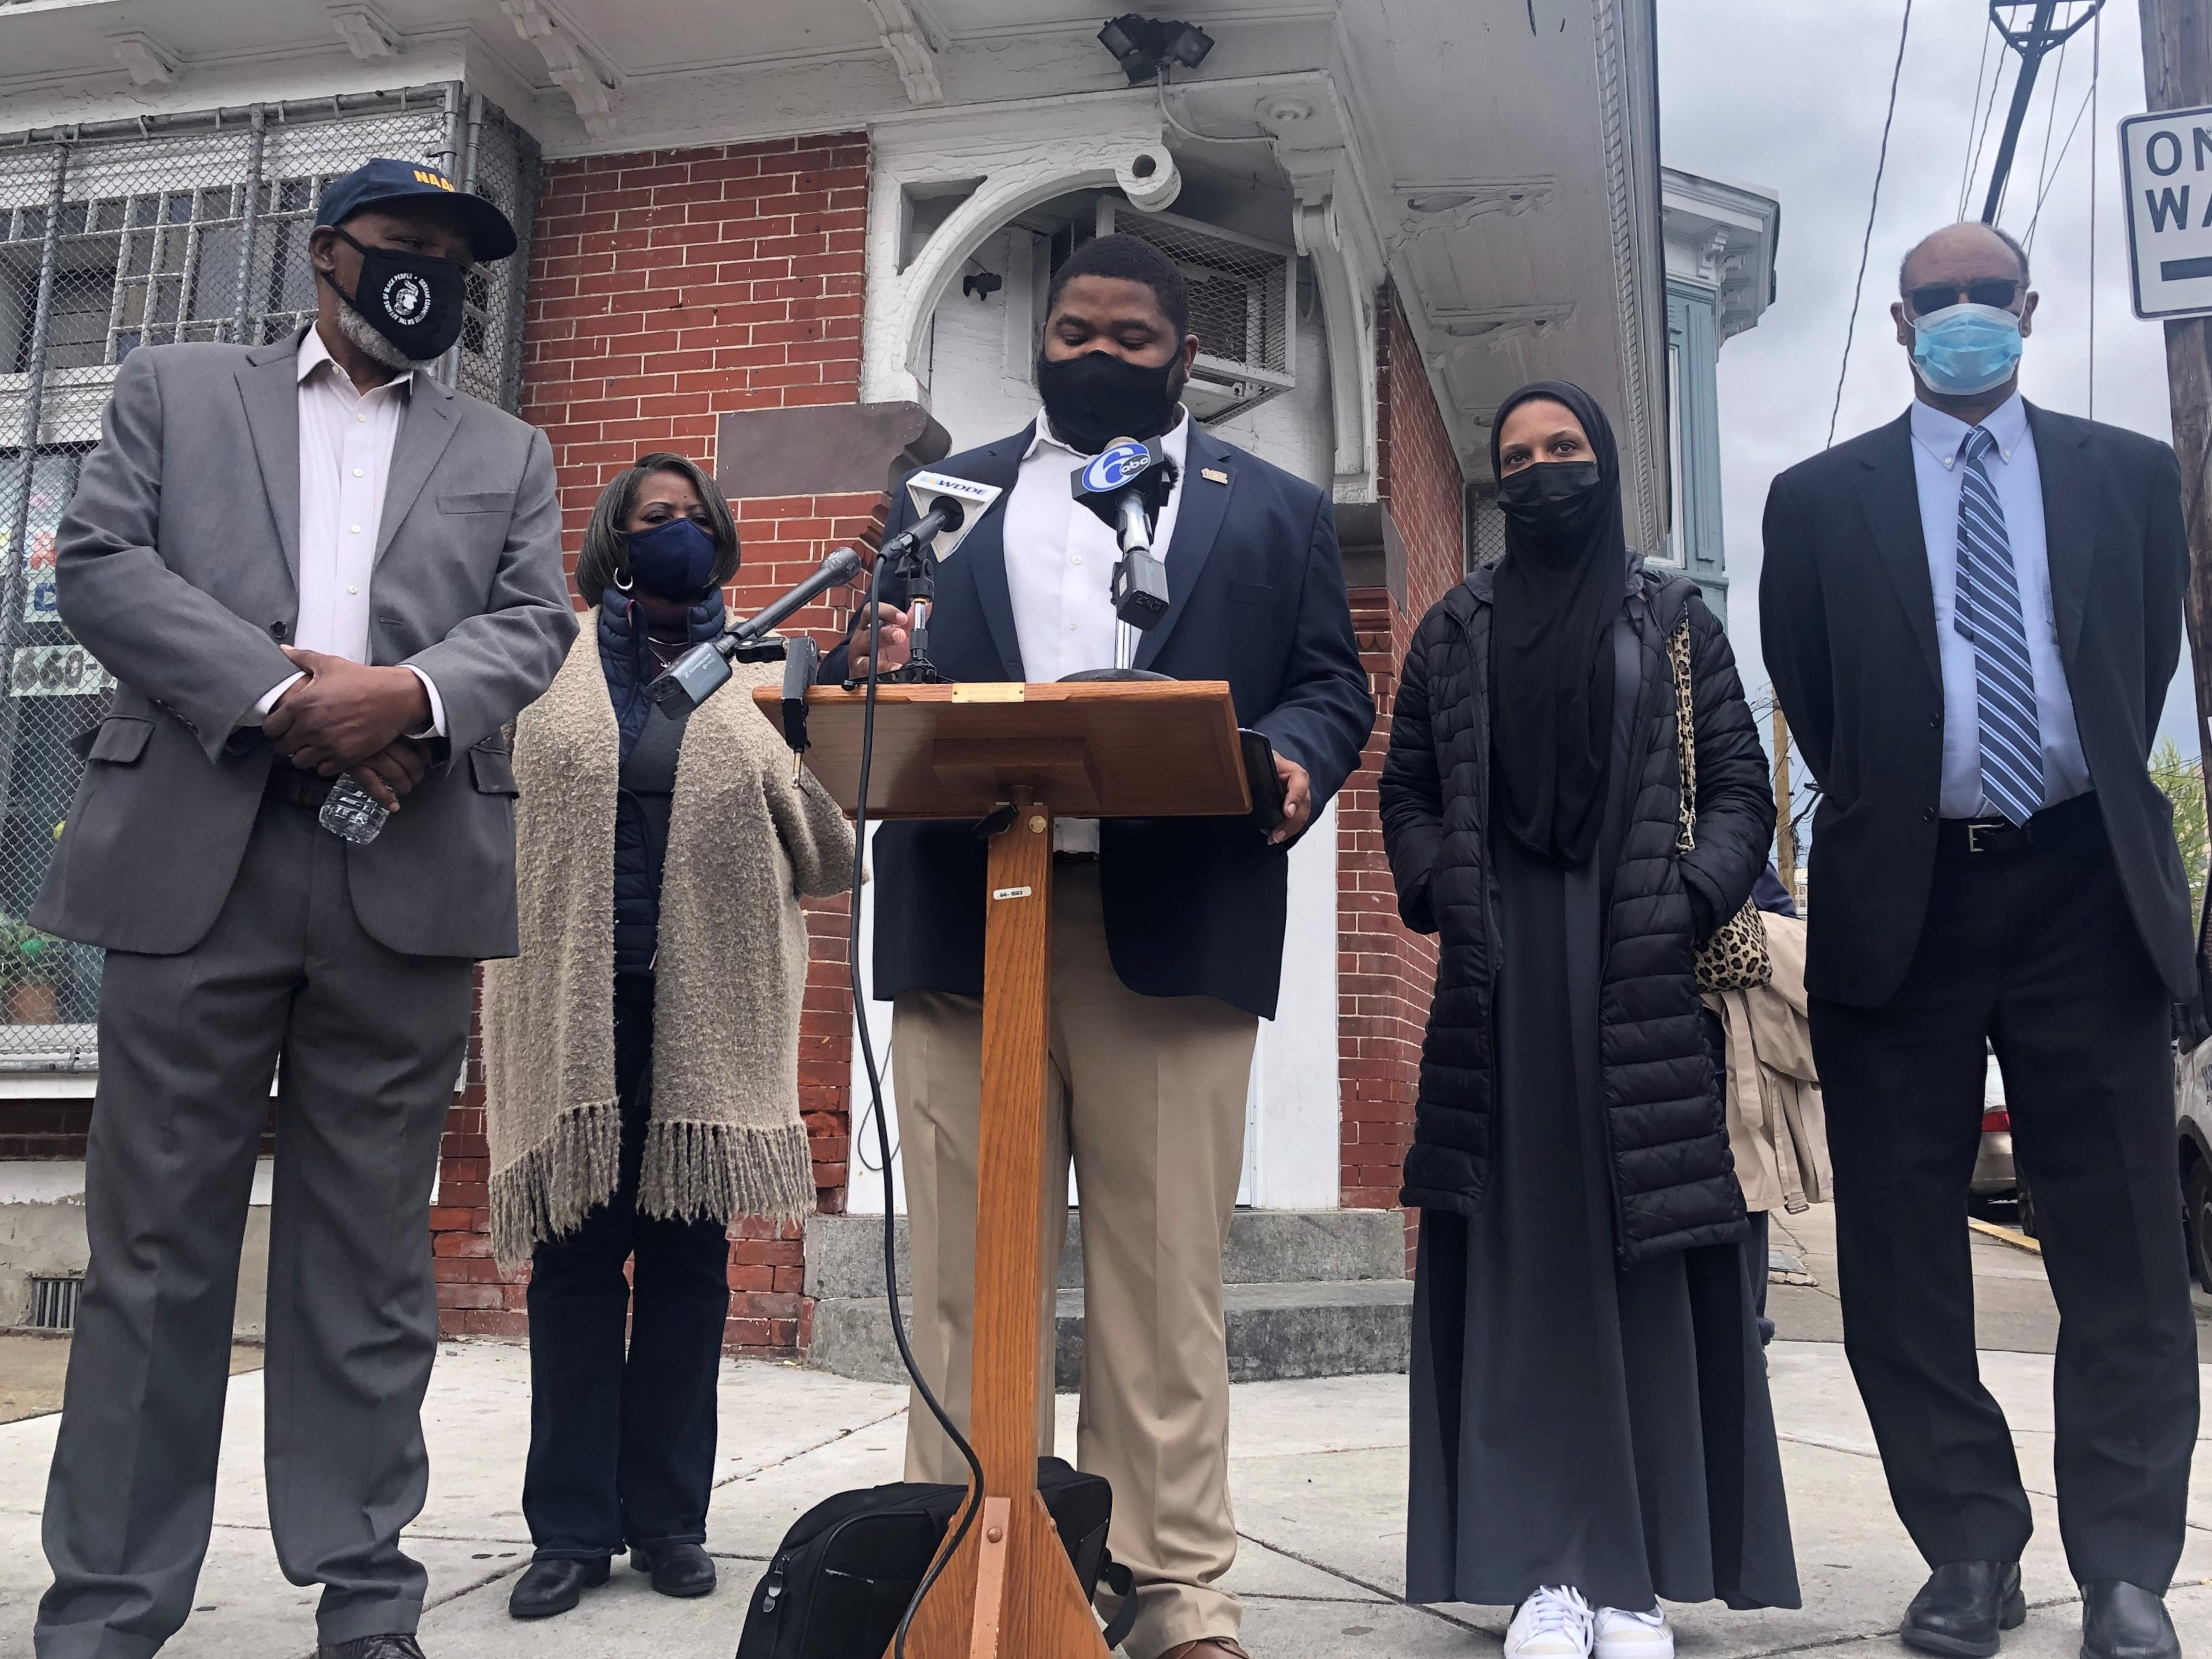 'Tired of watching our people die': Delaware NAACP wants feds help to end police, community violence